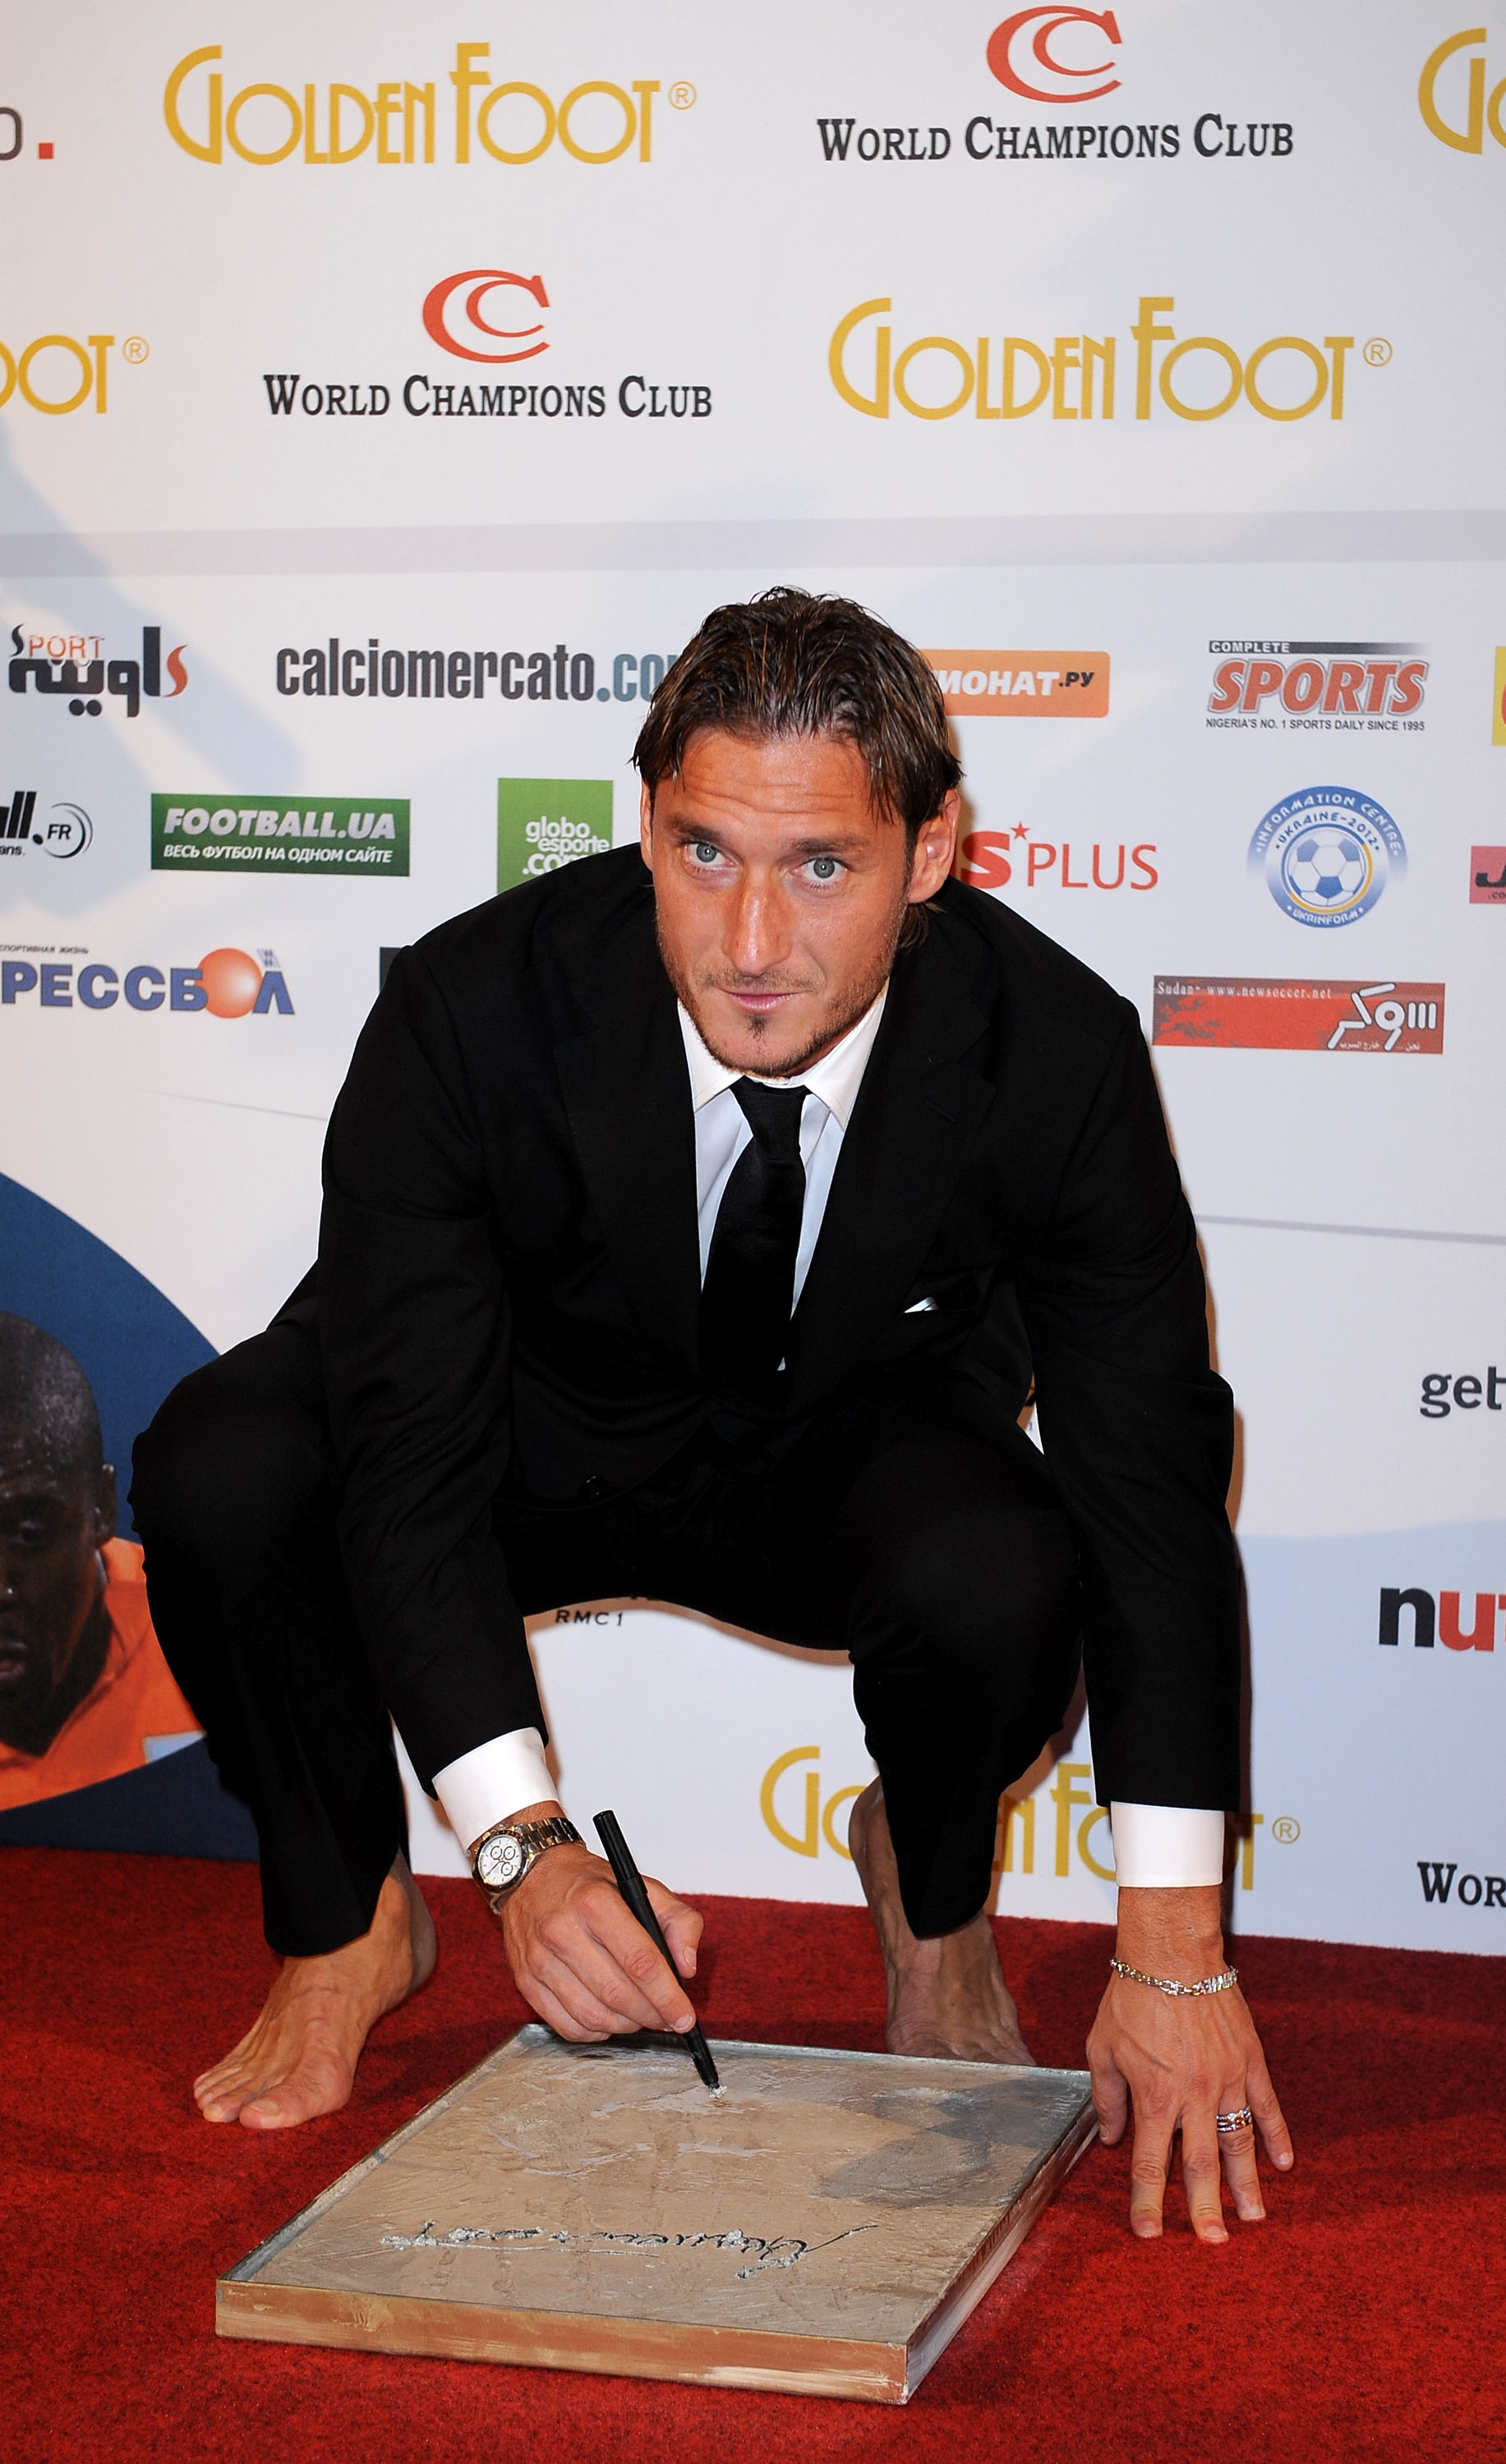 Francesco Totti - Golden Foot (Getty Images)